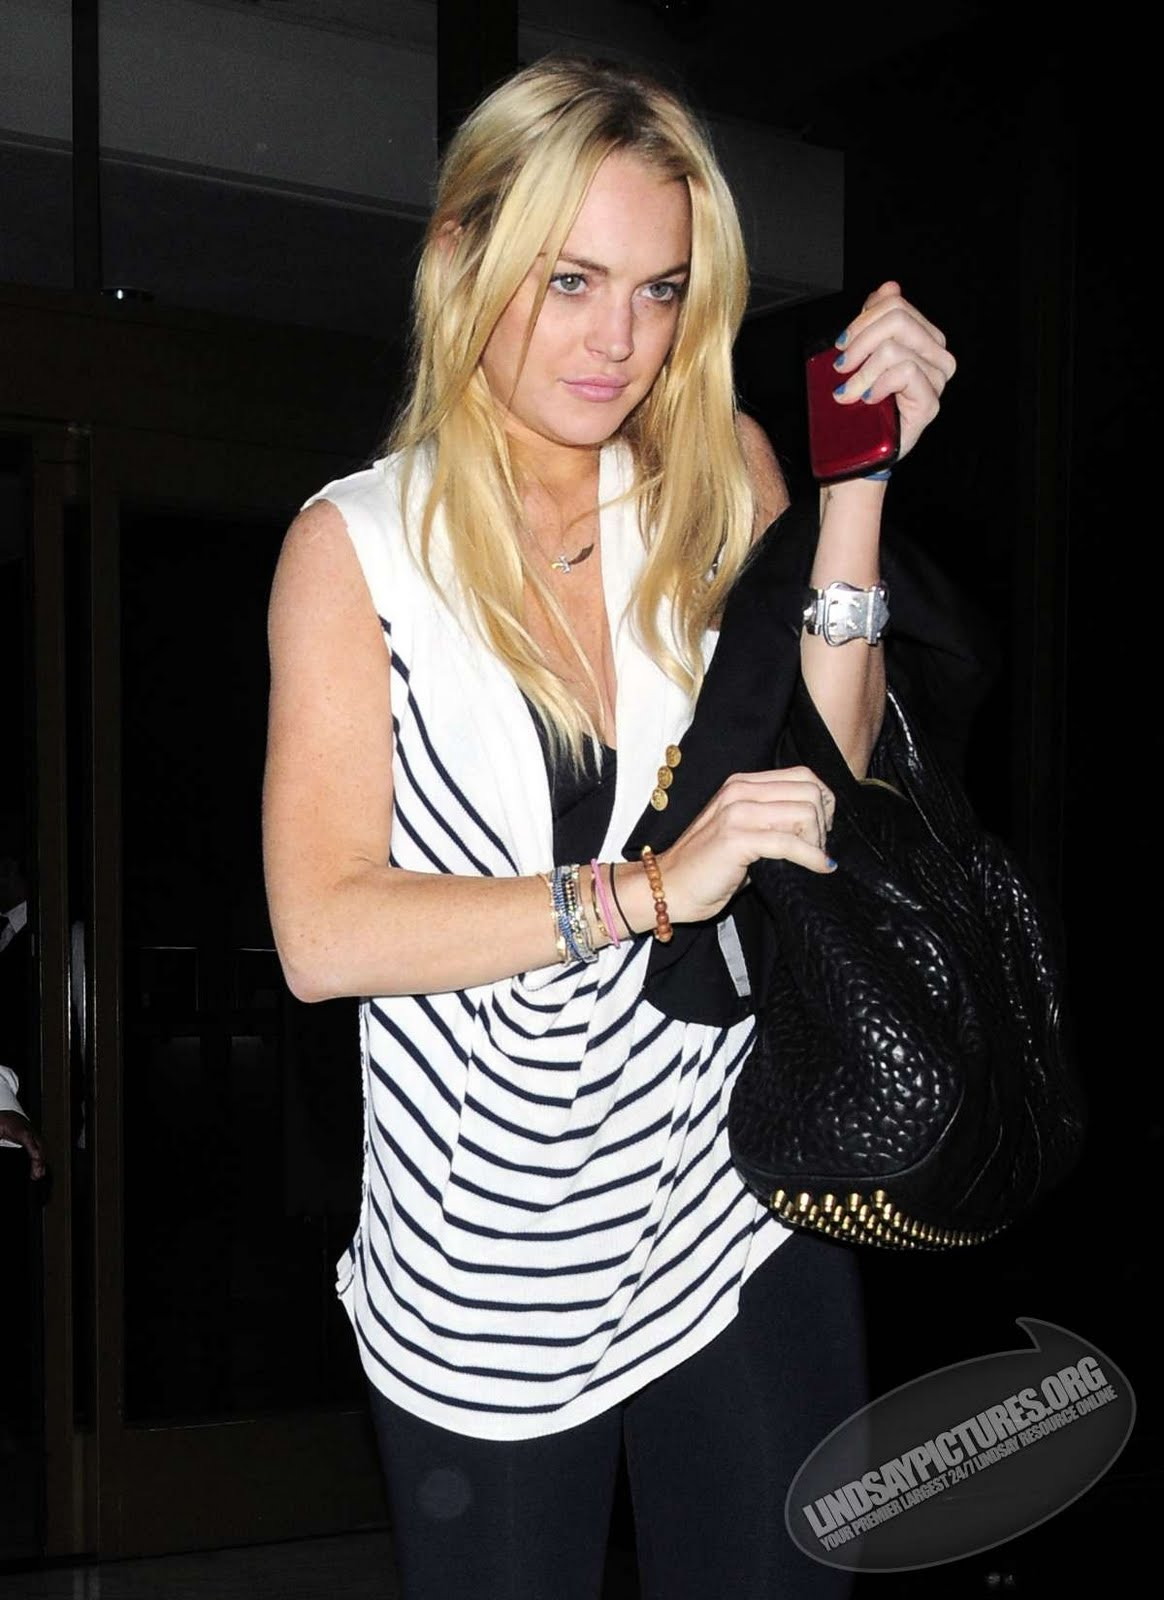 http://4.bp.blogspot.com/_-knQcvB6hEw/TH5gUWkOU3I/AAAAAAAAIhU/RJZ856sBpRo/s1600/Lindsay+Lohan+out+in+Hollywood+night+candids4.jpg